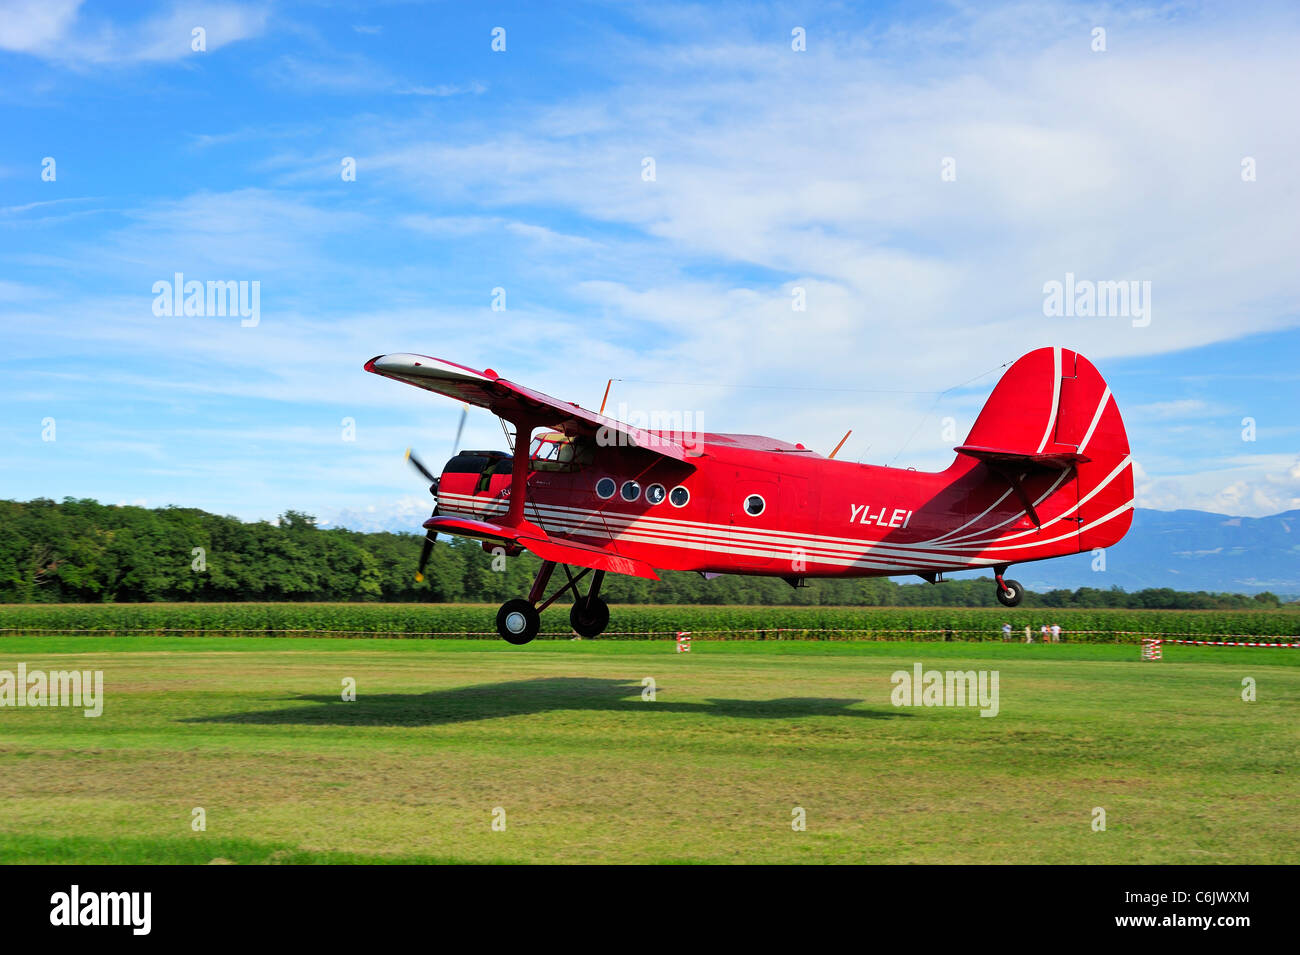 An Antonov AN-2 biplane landing. Motion blur on the background. - Stock Image